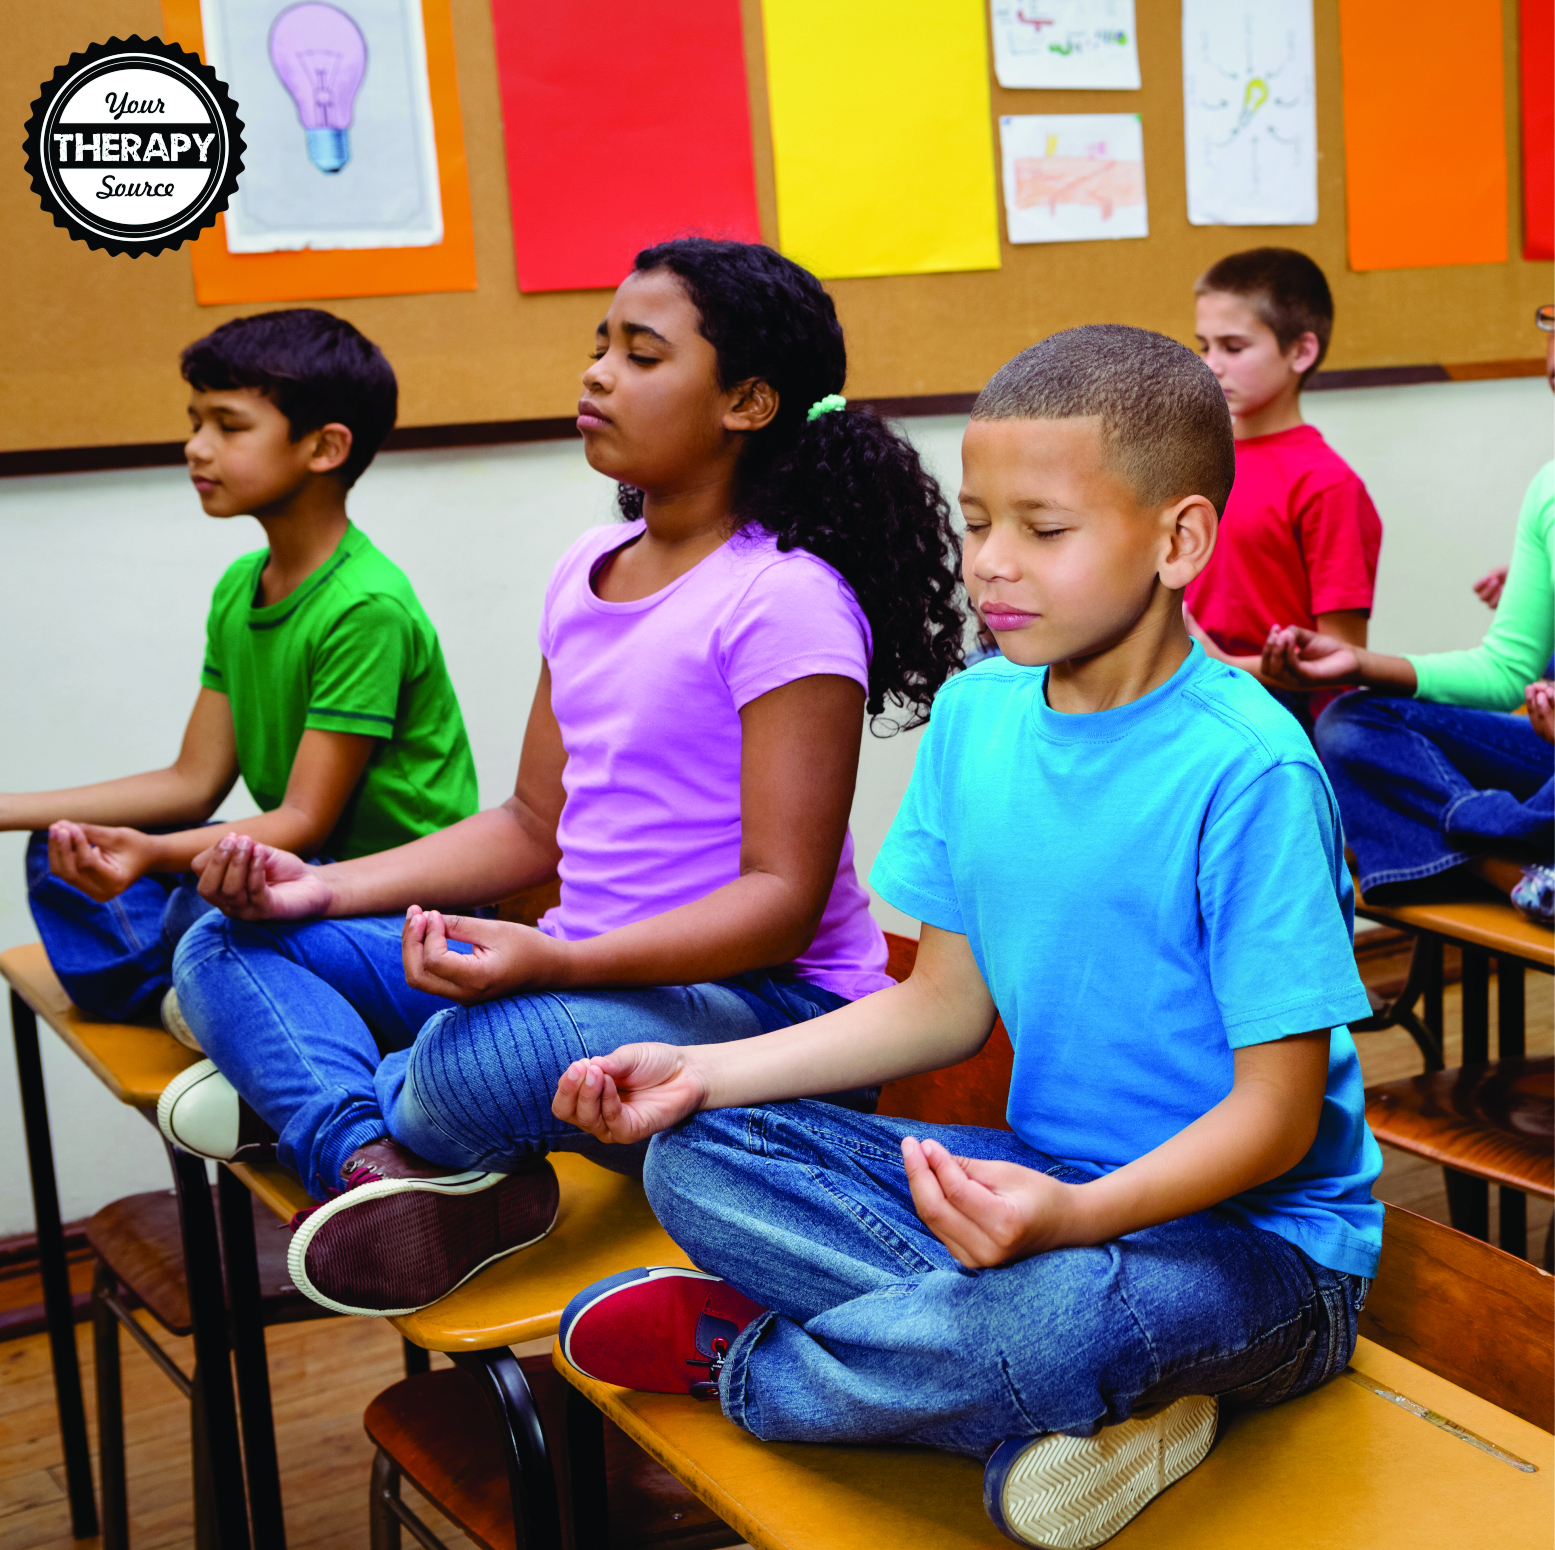 Yoga for ADHD - research indicates that yoga may help promote self-control, attention, body awareness, and stress management.